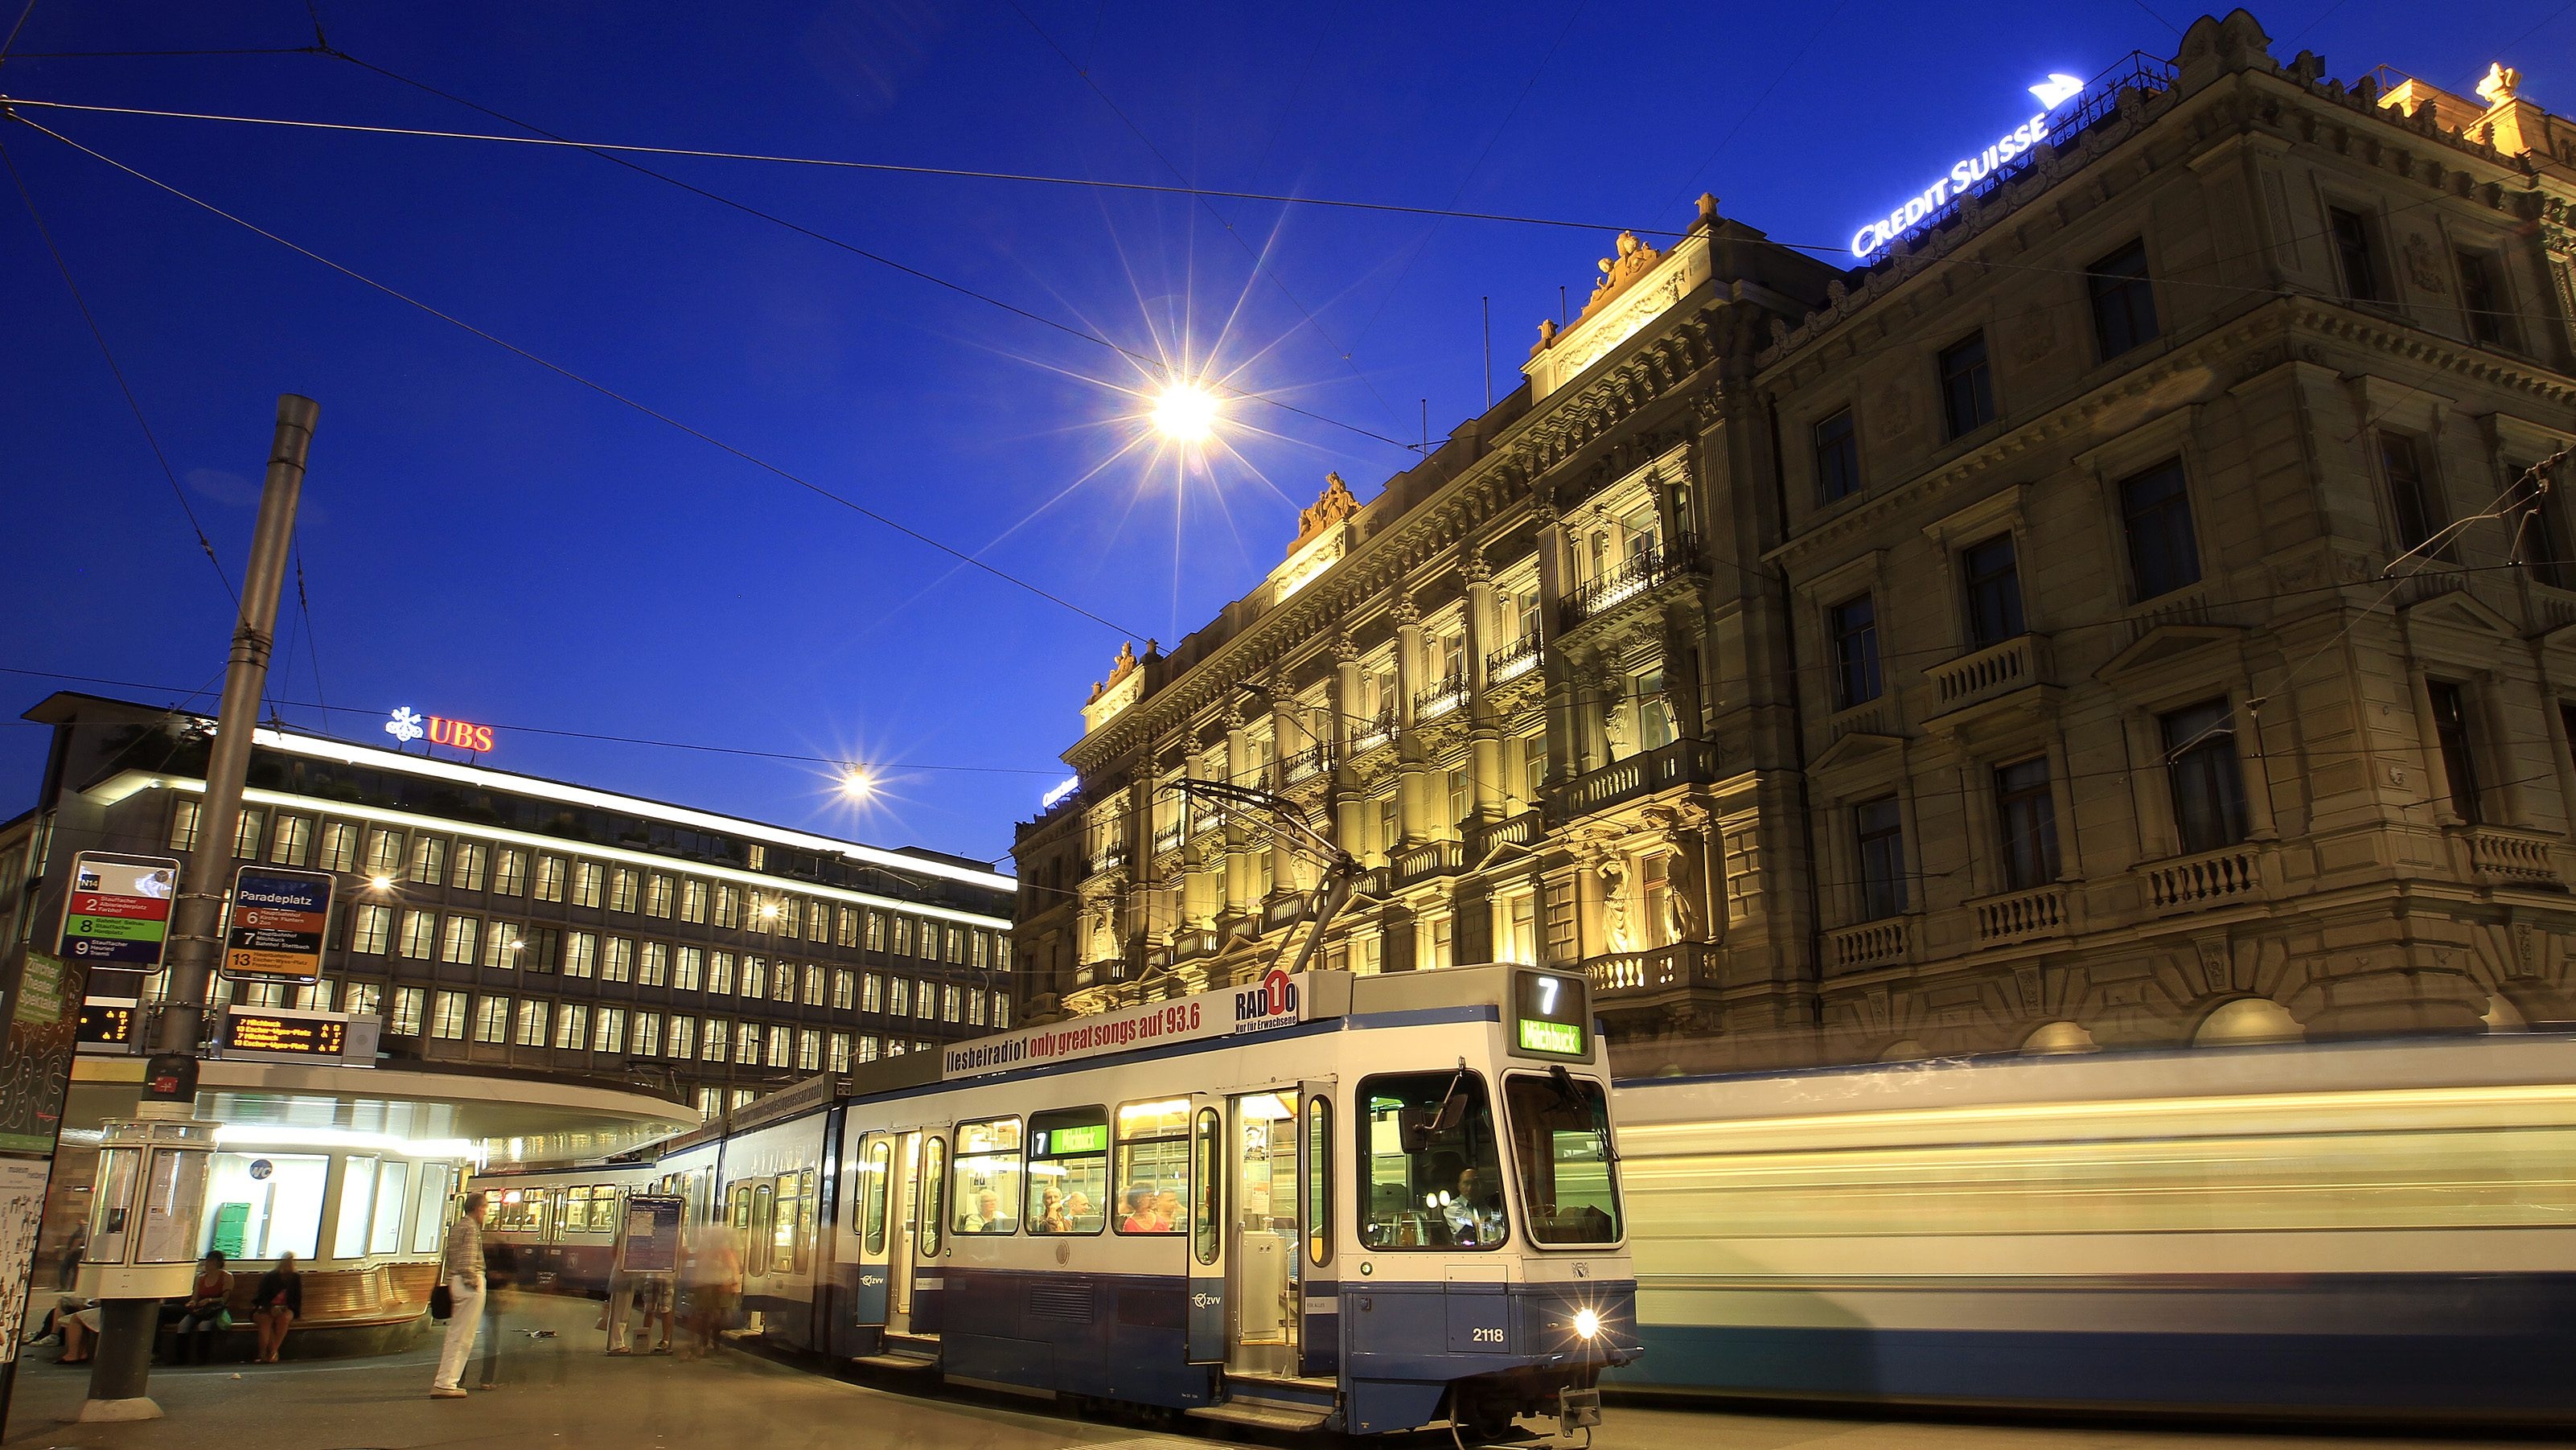 Trams drive past the offices of Swiss banks UBS (L) and Credit Suisse at Paradeplatz square in Zurich August 10, 2012.  REUTERS/Arnd Wiegmann (SWITZERLAND - Tags: BUSINESS CITYSPACE) - RTR36NO6